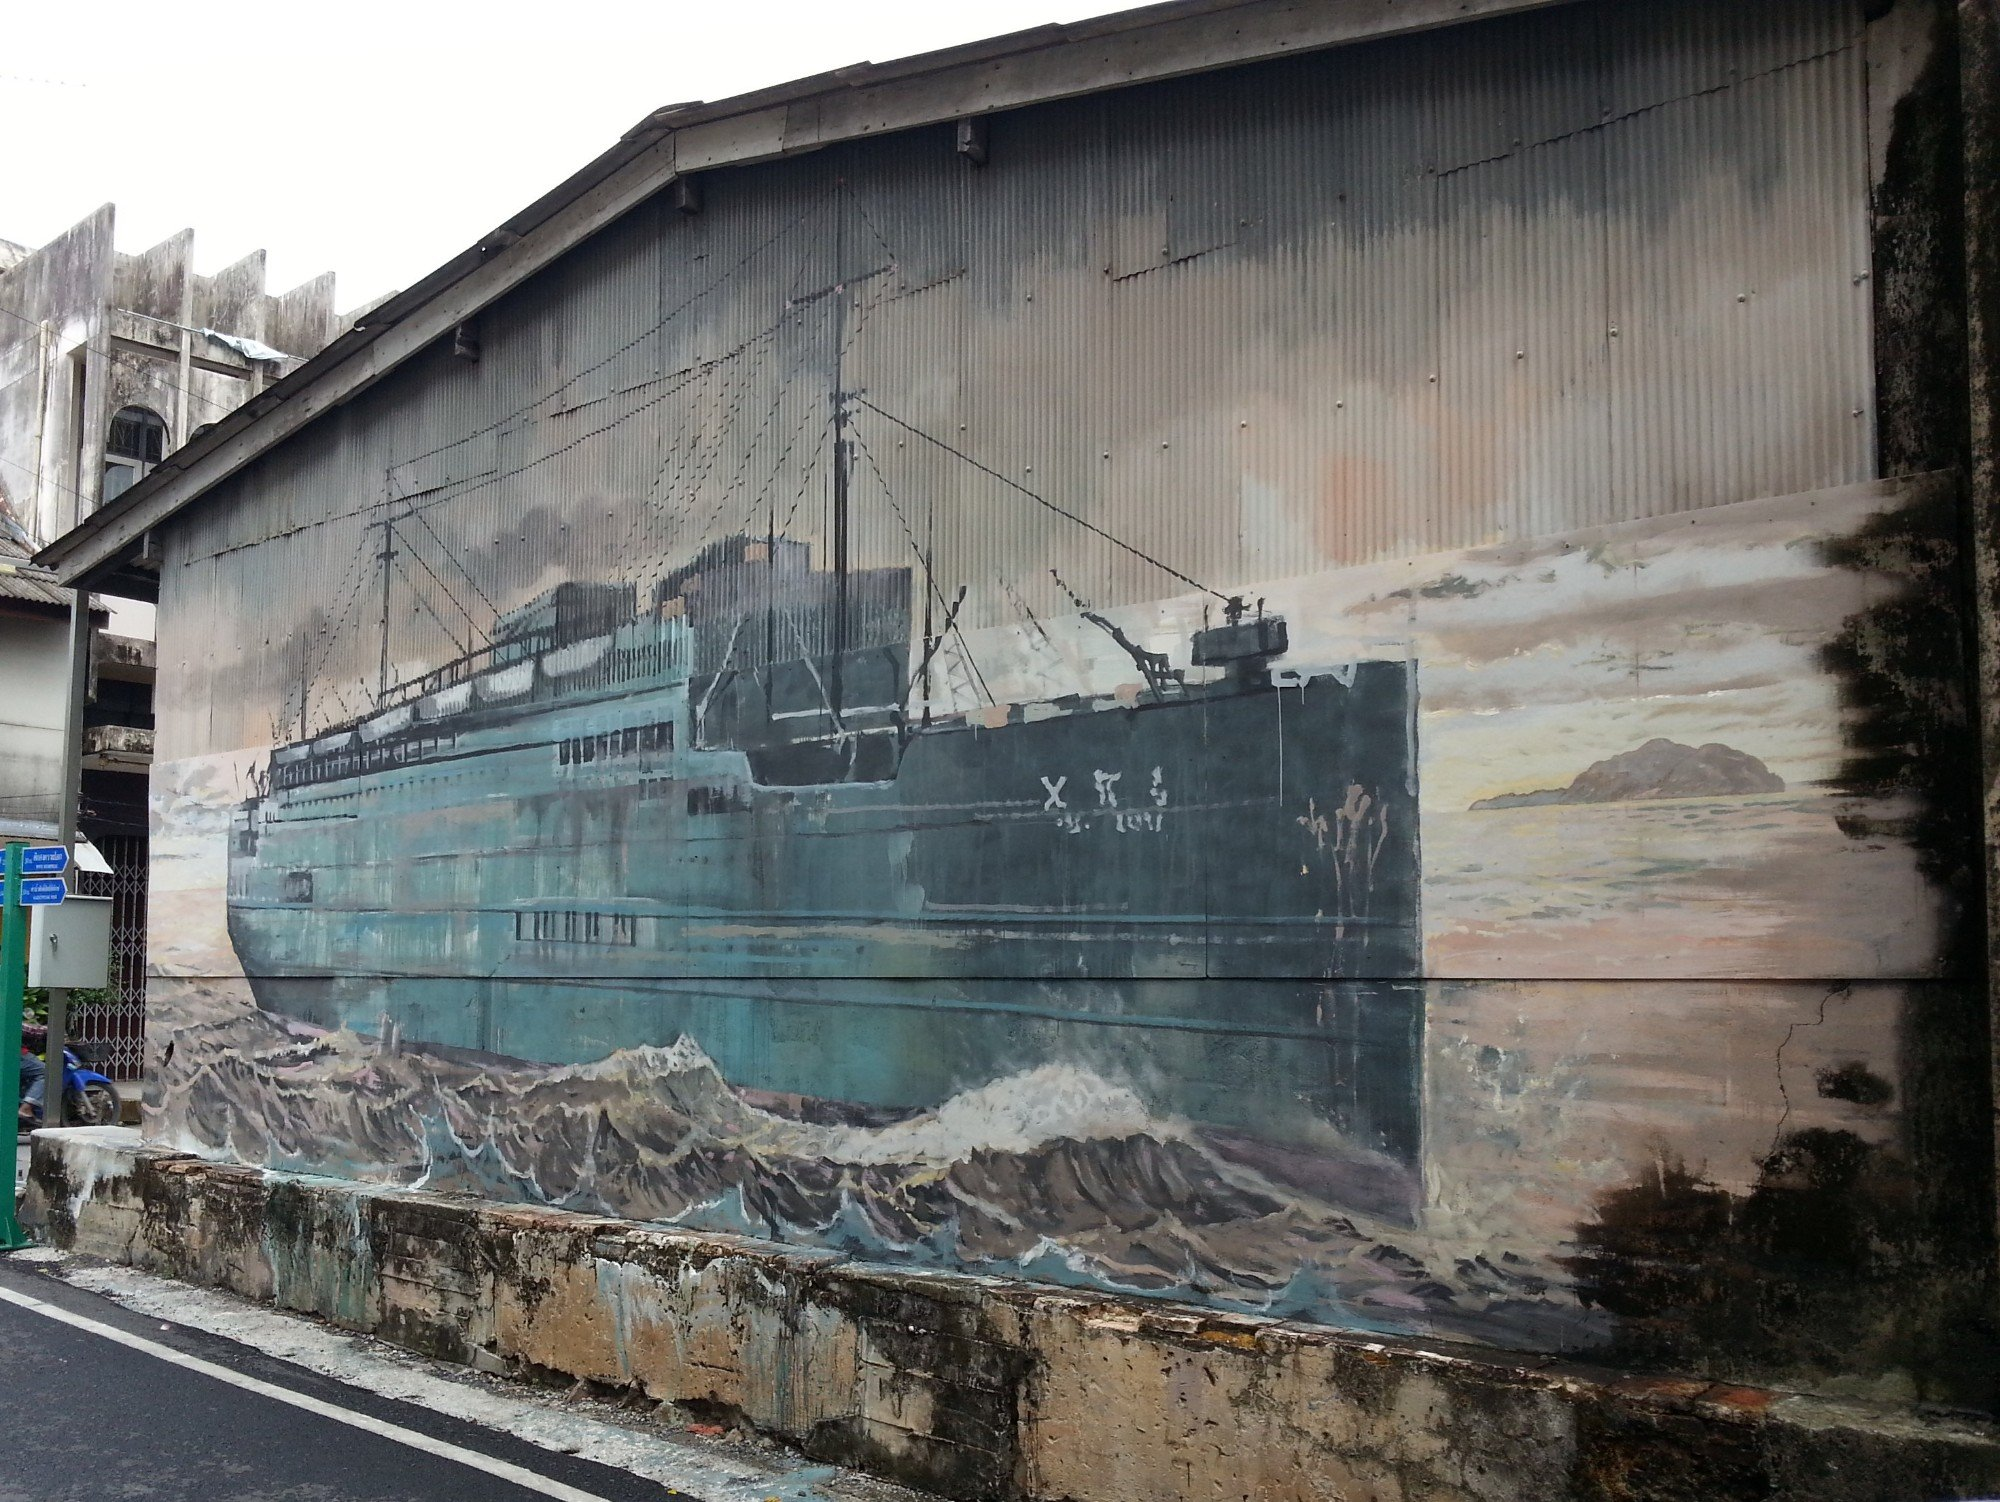 Ship mural in Songkhla